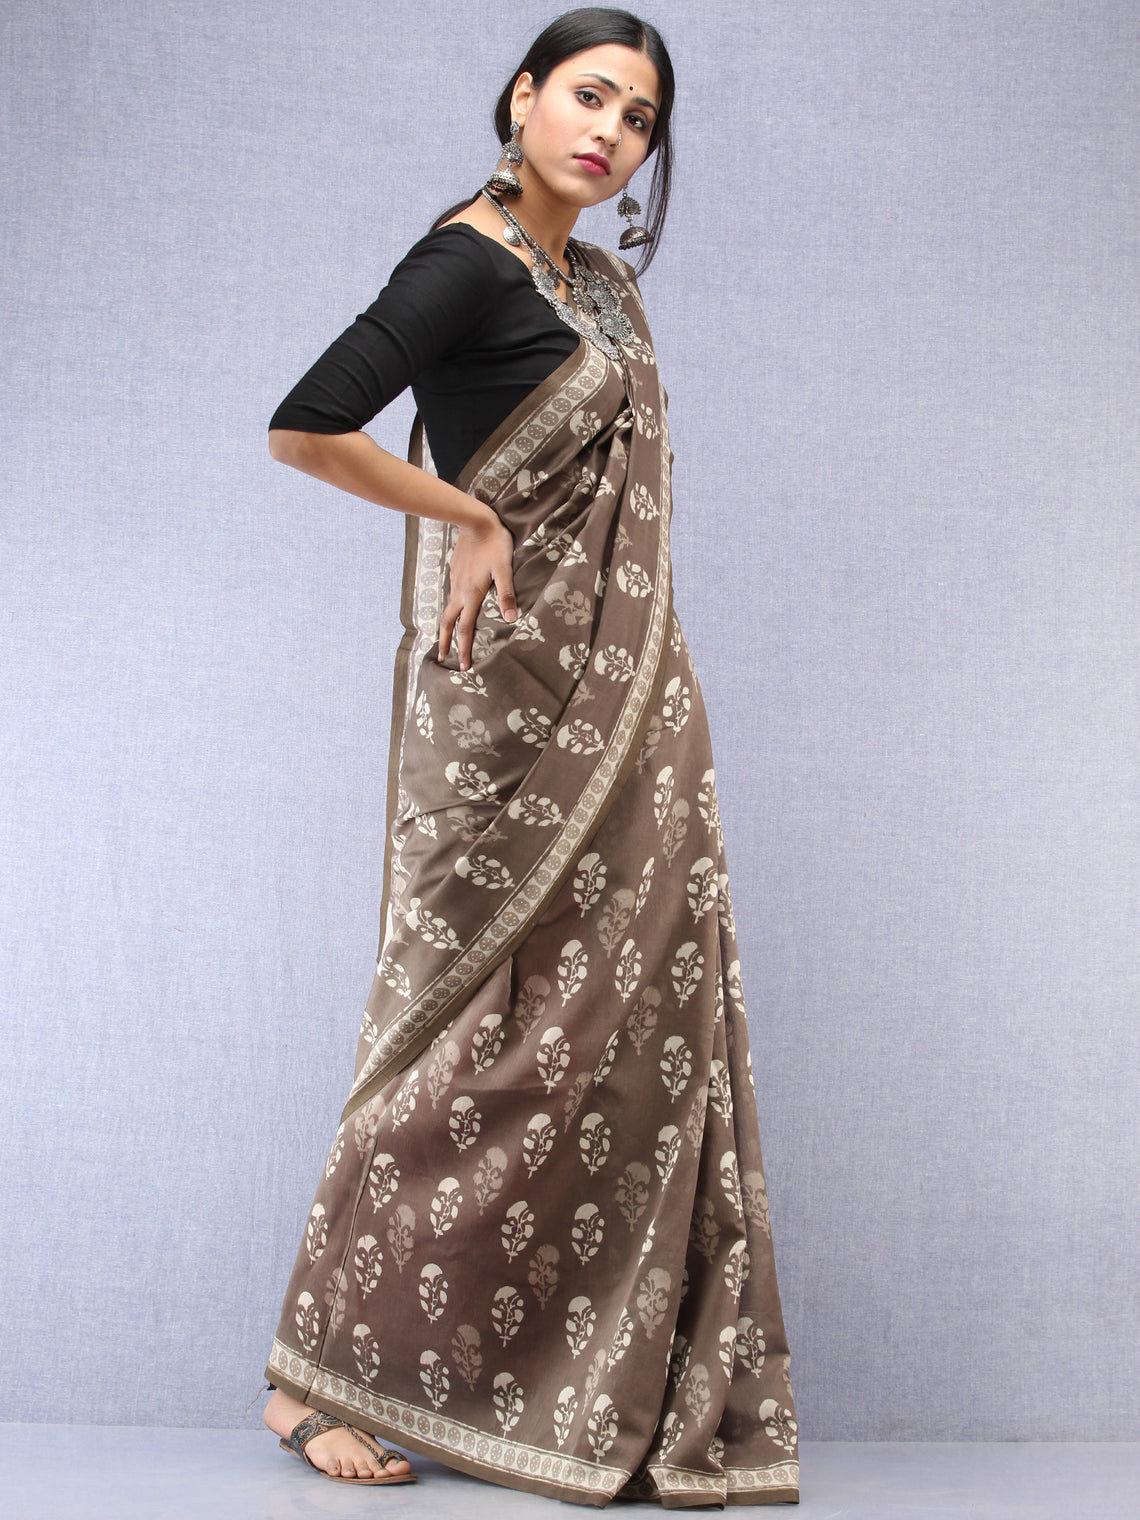 Kashish White Hand Block Printed Chanderi Saree With Zari Border - S031704531